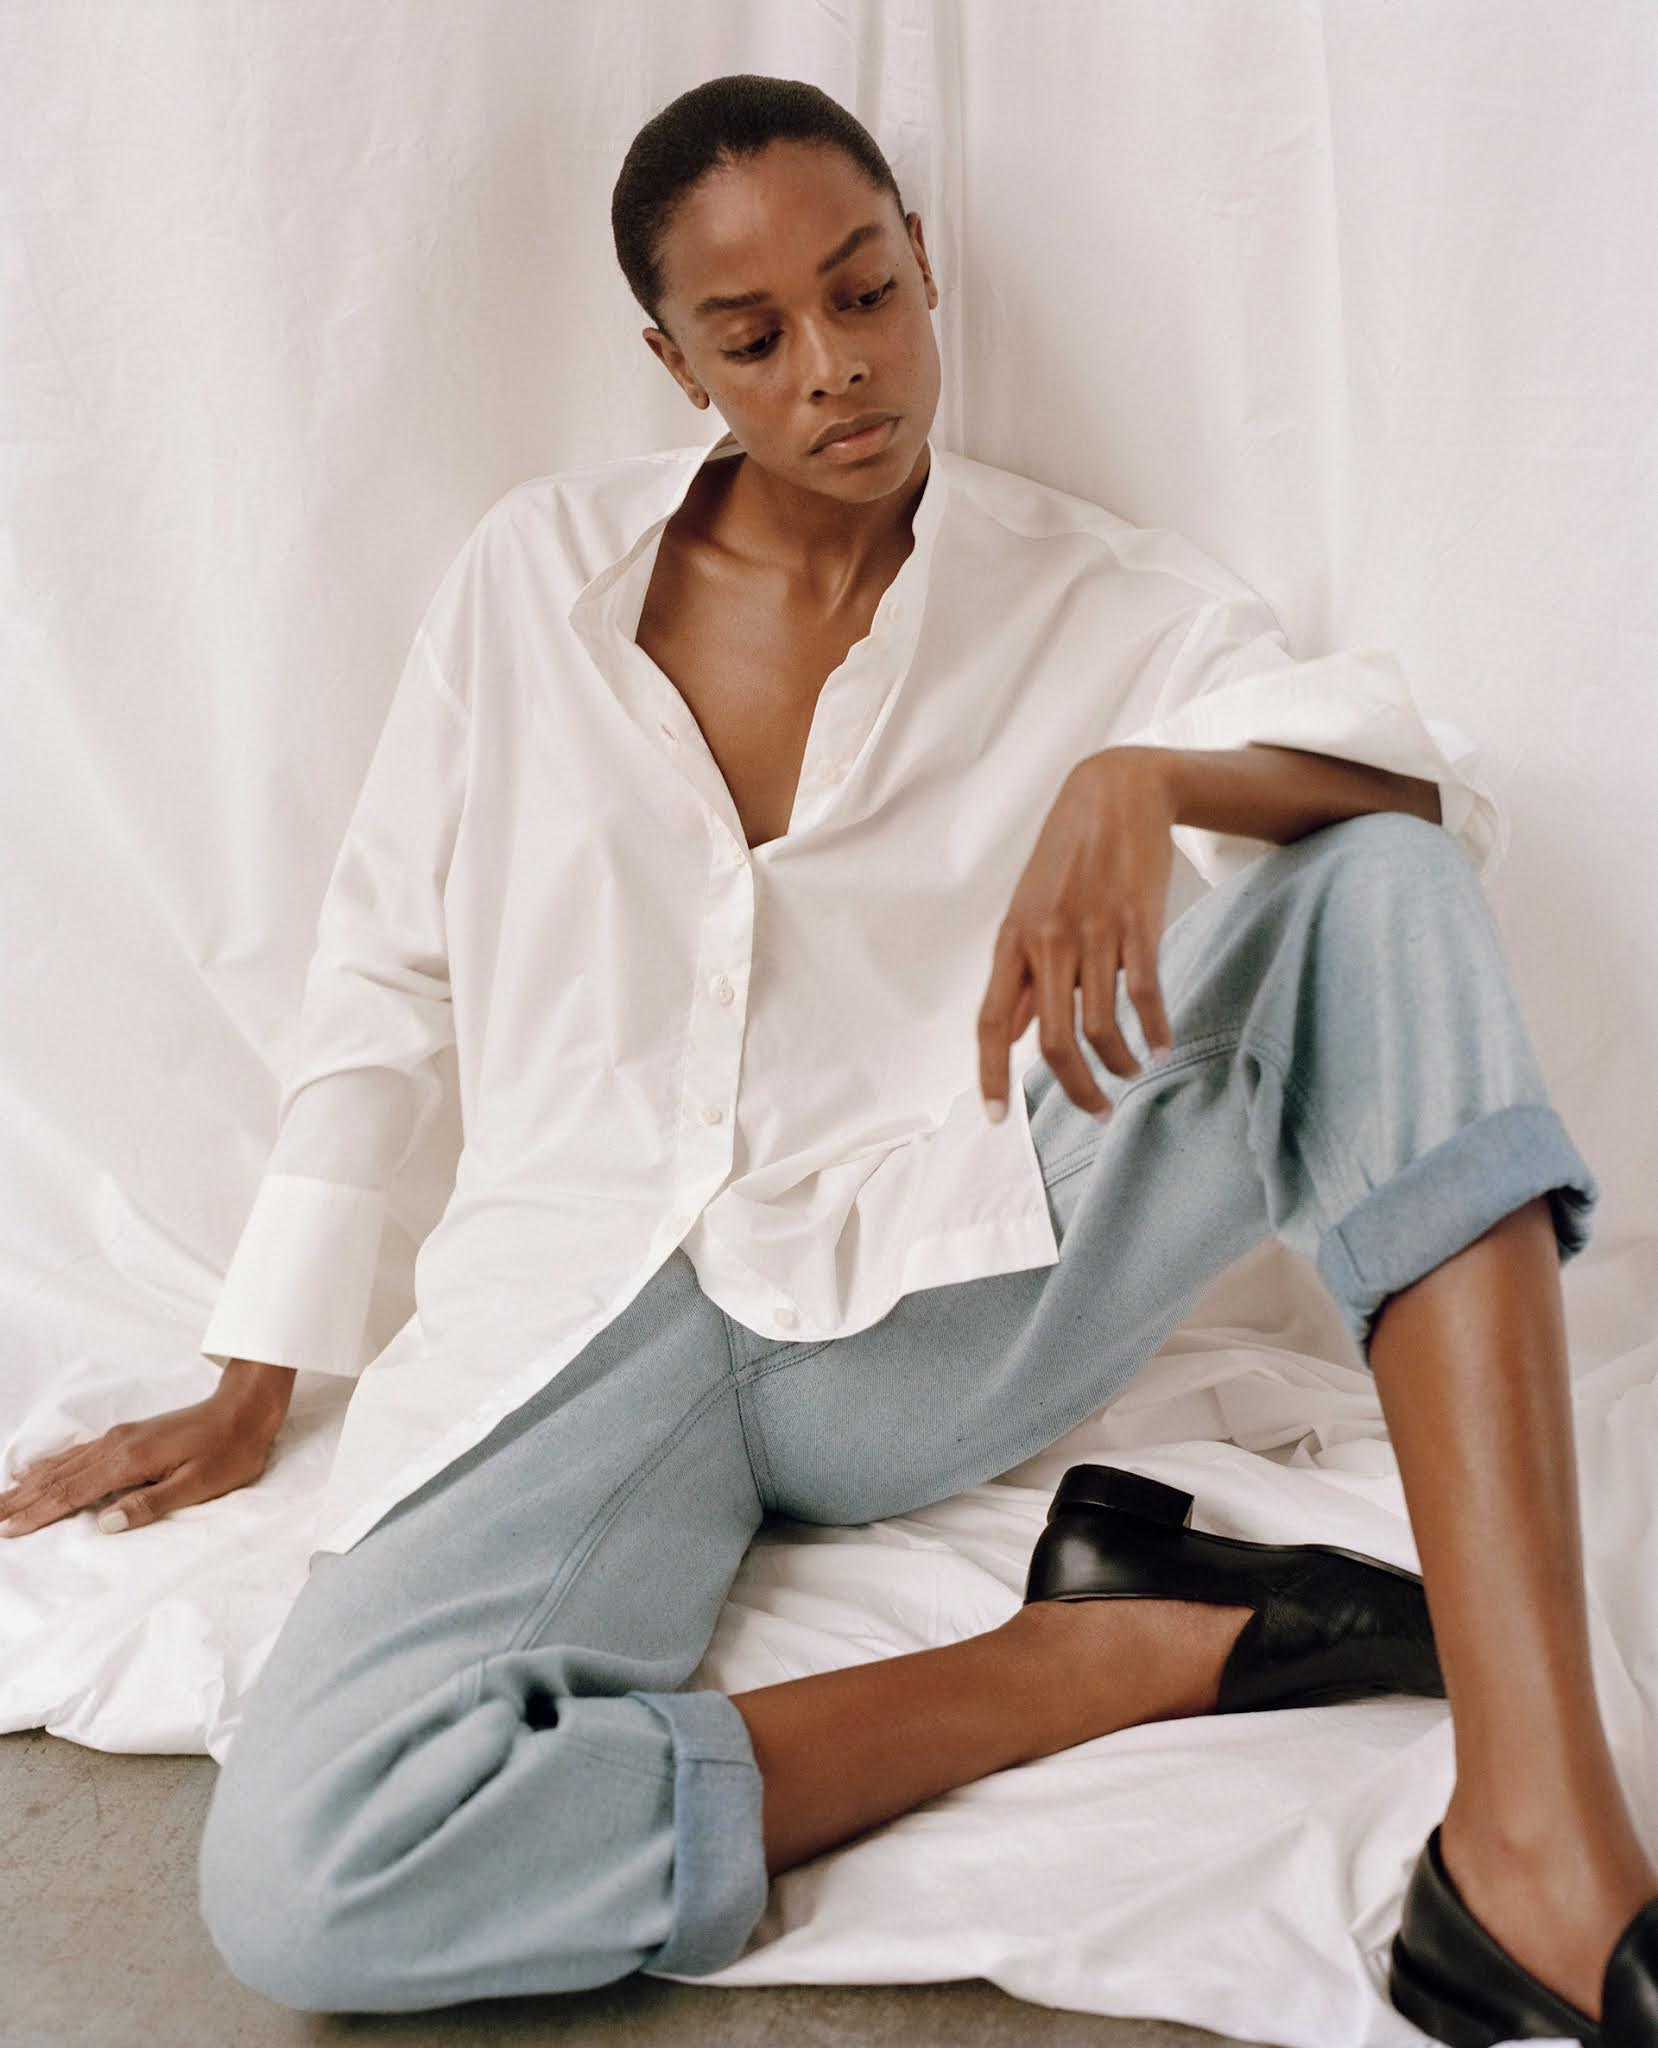 5 Minimalist Fall Outfit Ideas — Capsule Wardrobe with white button-down shirt, straight-leg cuffed jeans, and black loafers